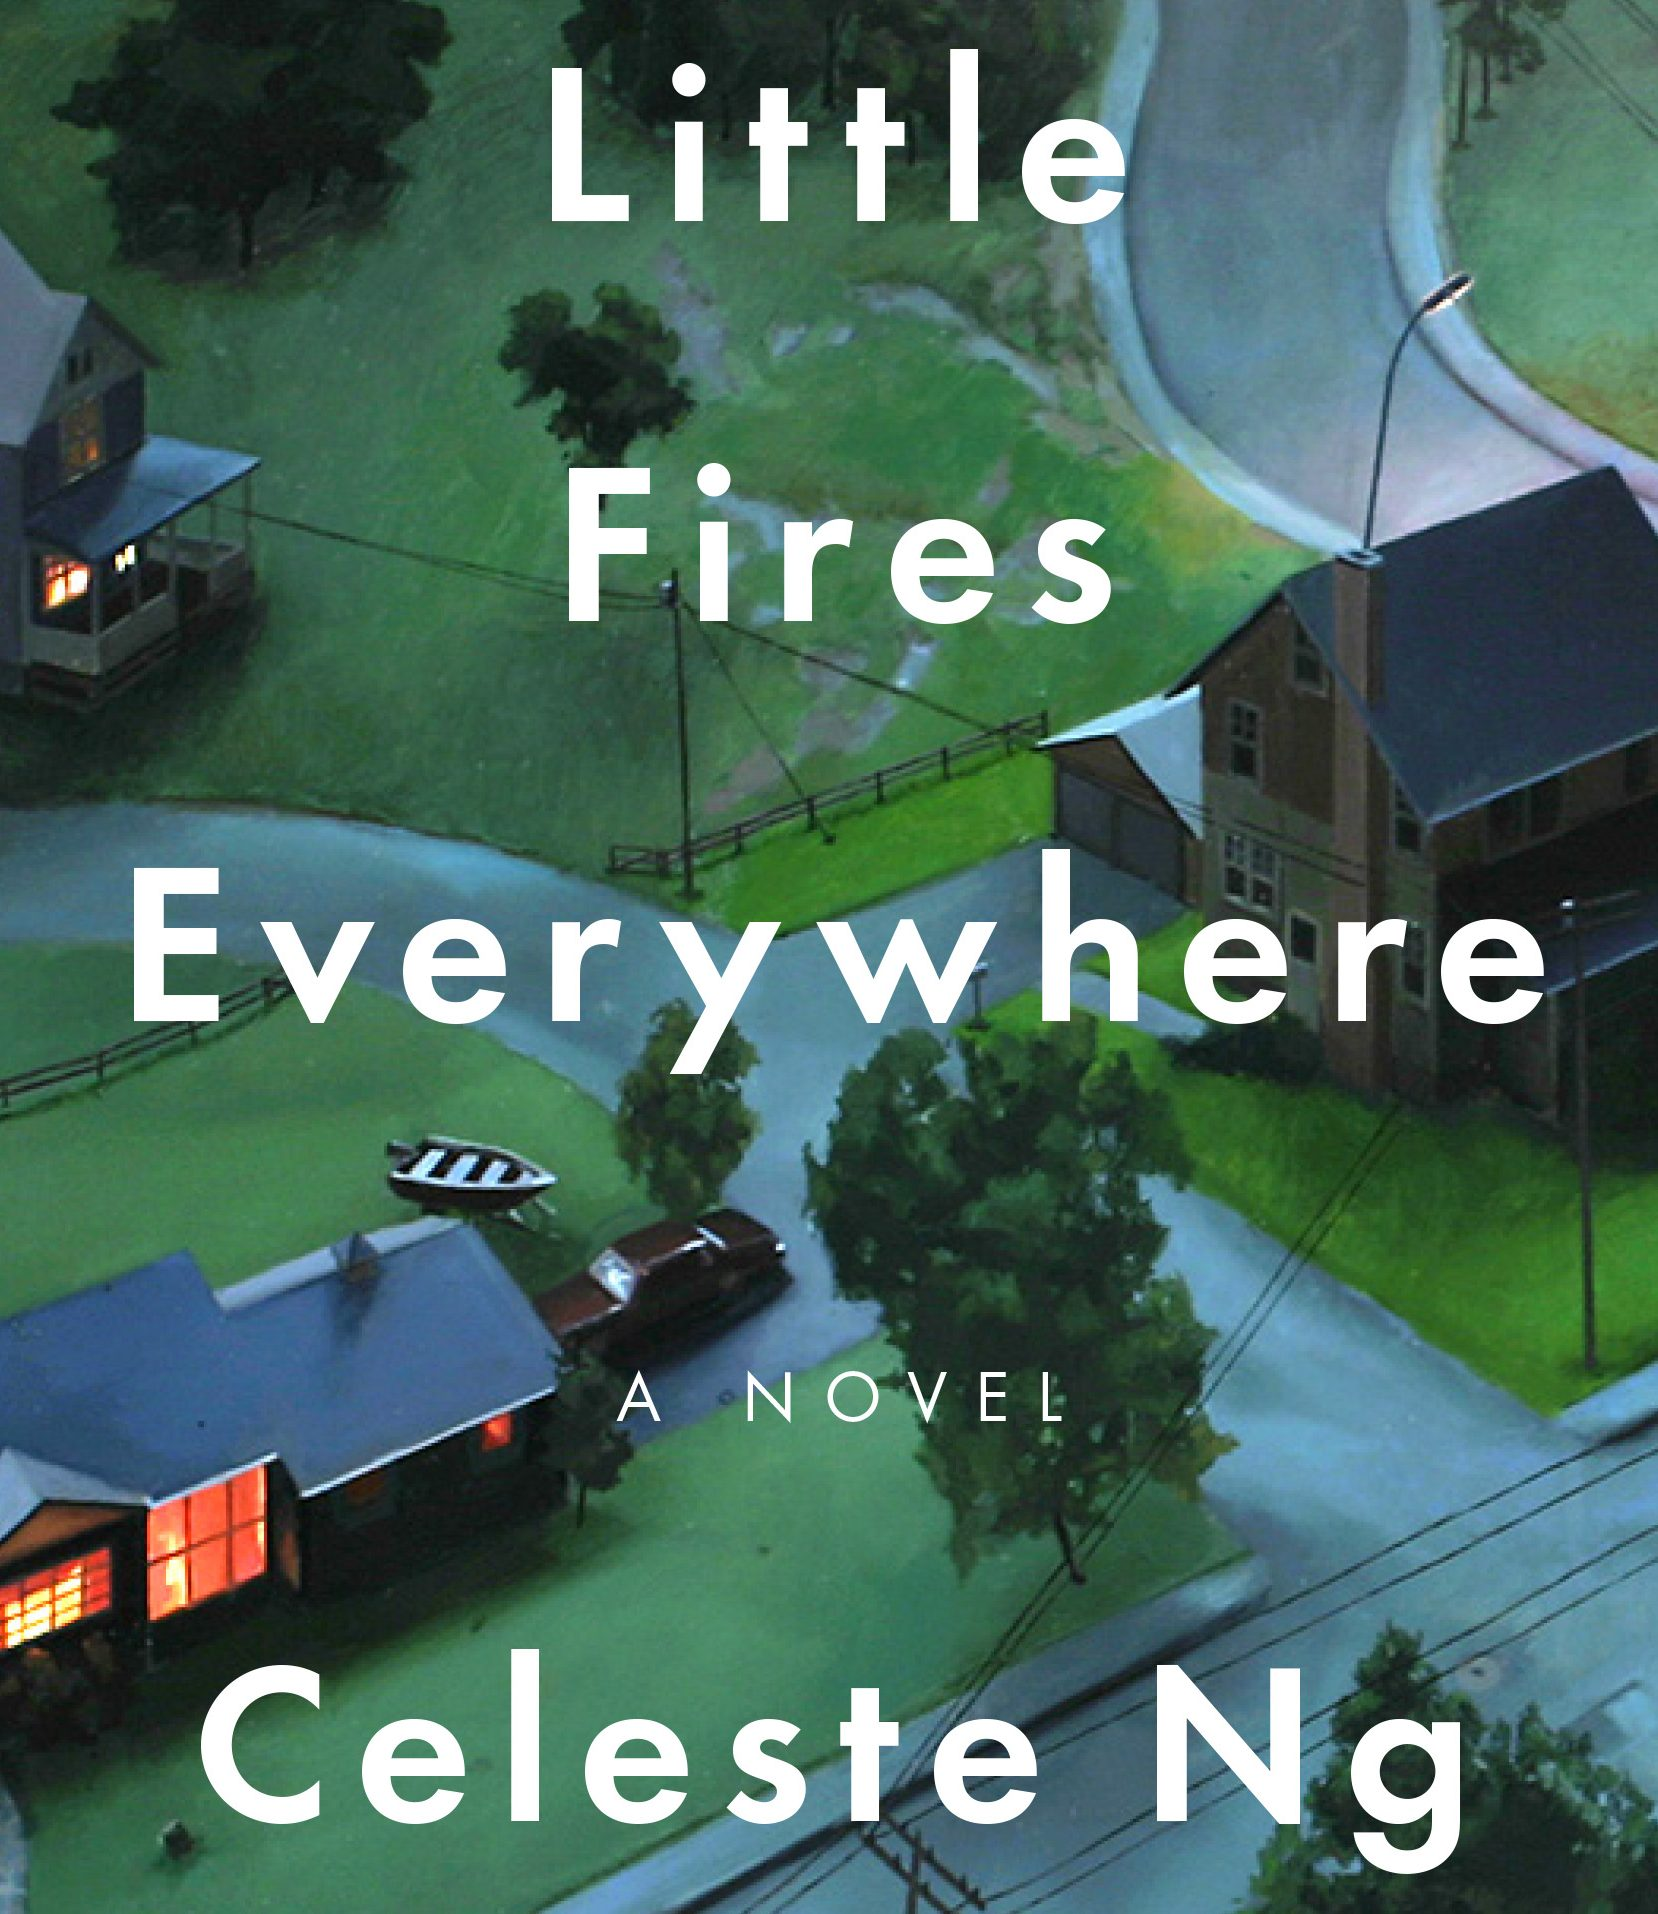 Little Fires Everywhere gets straight-to-series order at Hulu